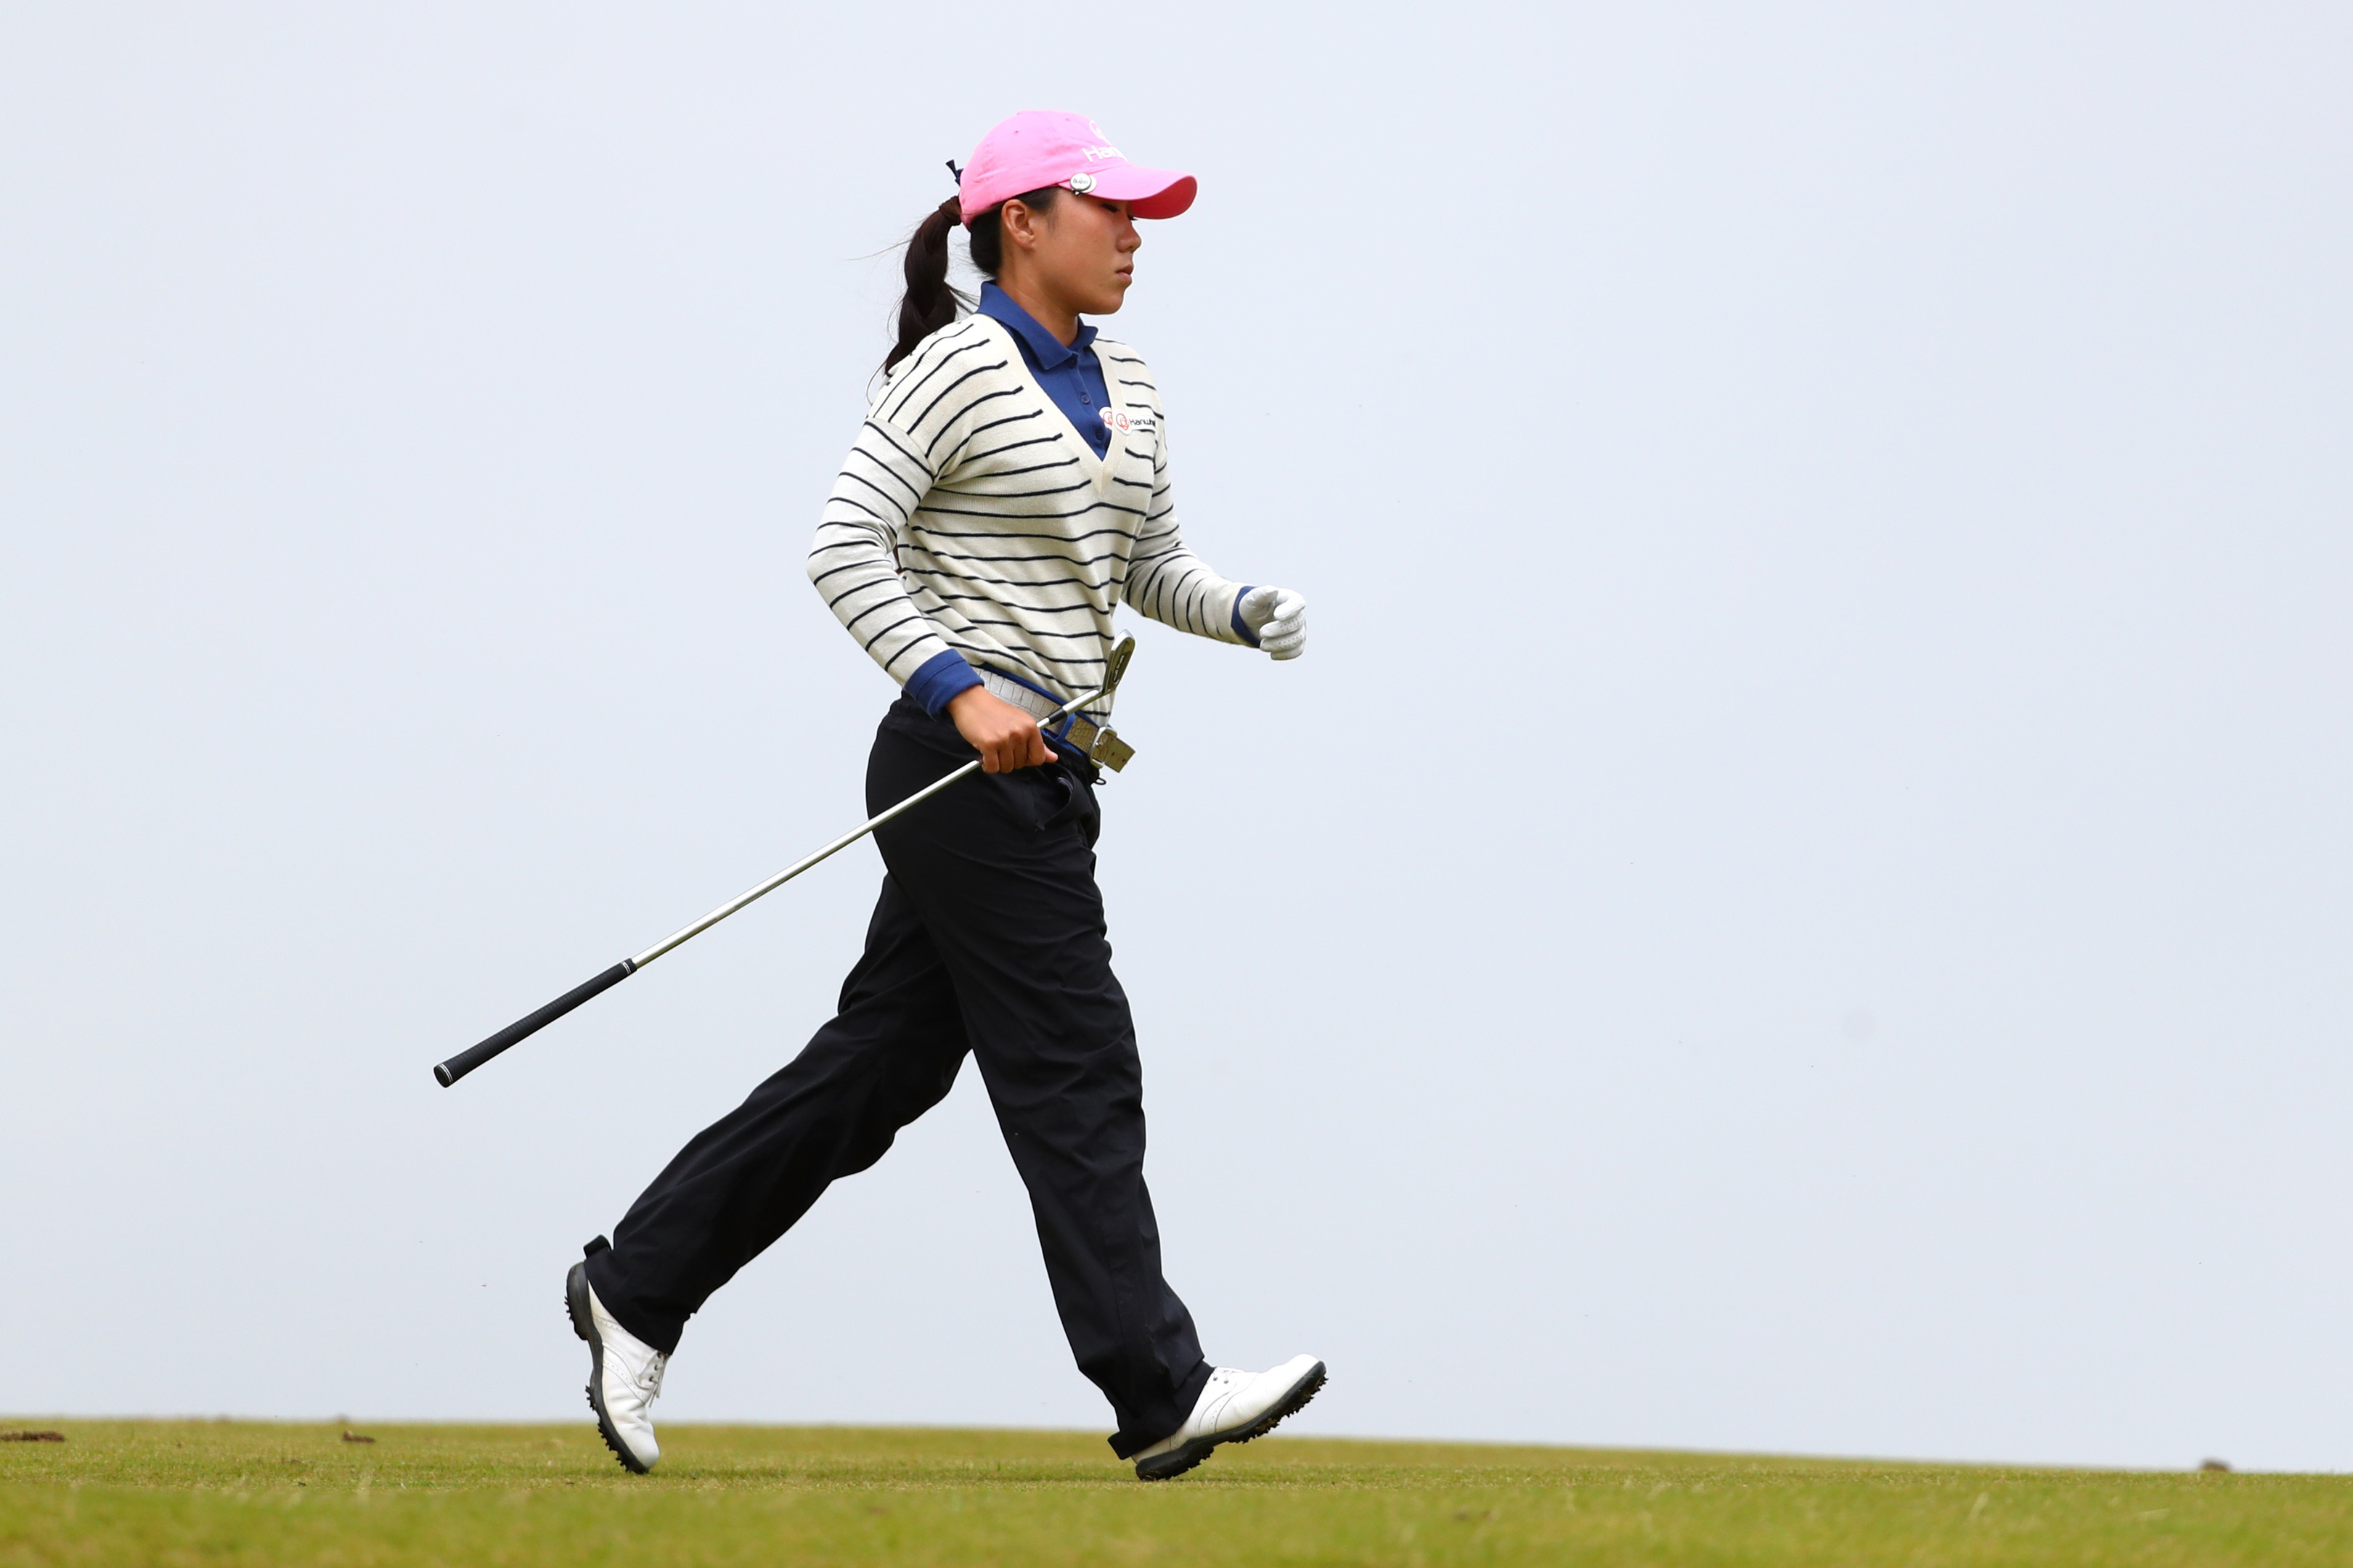 In-Kyung Kim was in a hurry on the 4th before the rains came at Kingsbarns.